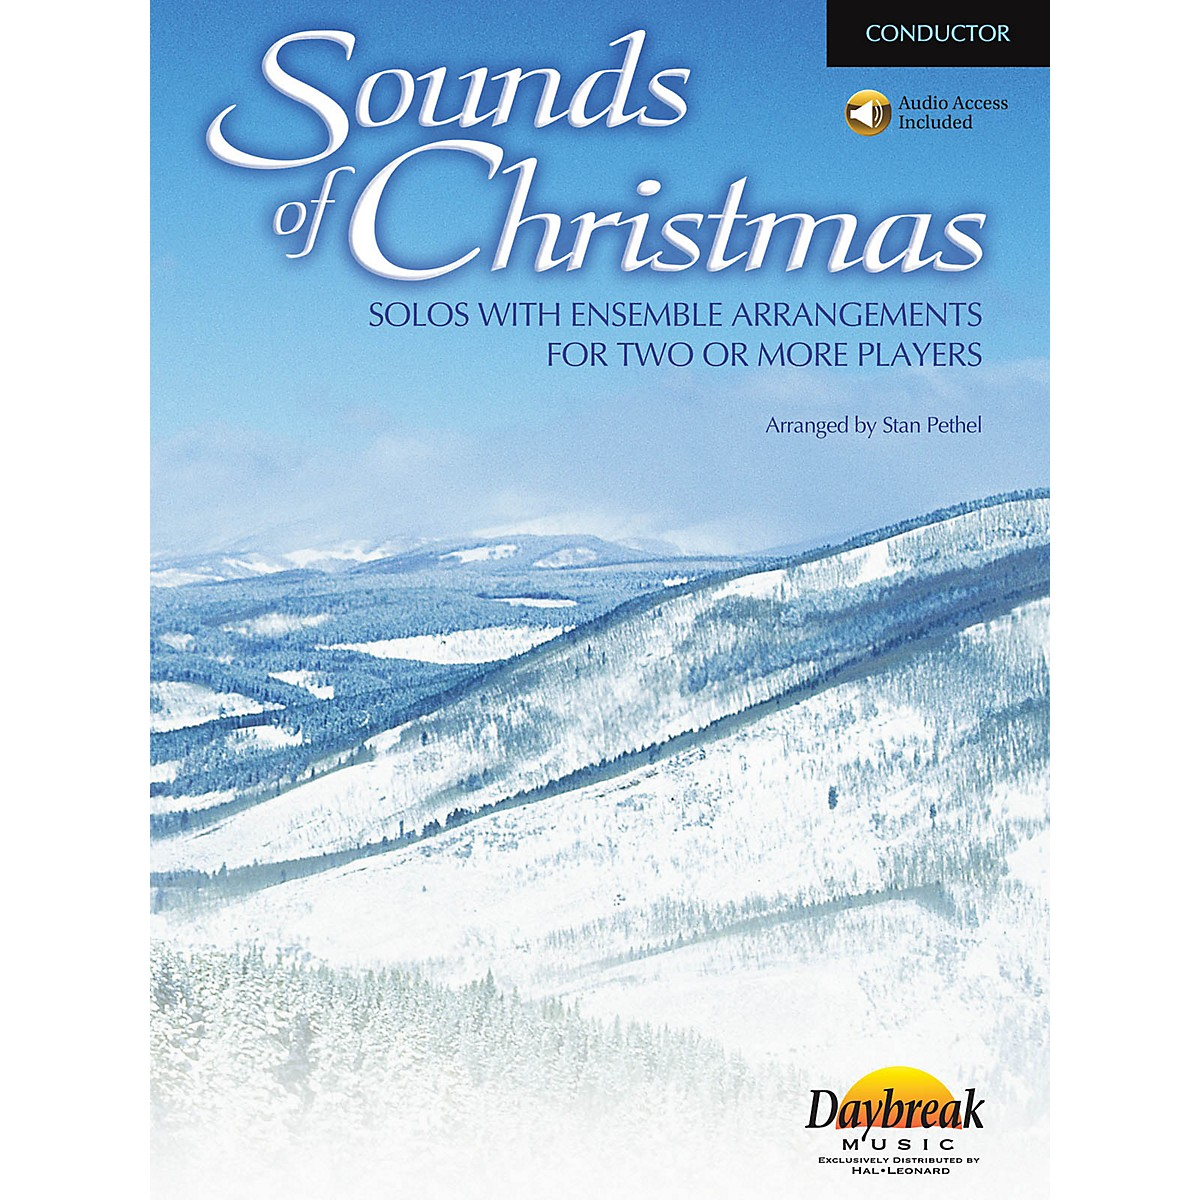 Daybreak Music Sounds of Christmas (Solos with Ensemble Arrangements for Two or More Players) CD ACCOMP by Stan Pethel